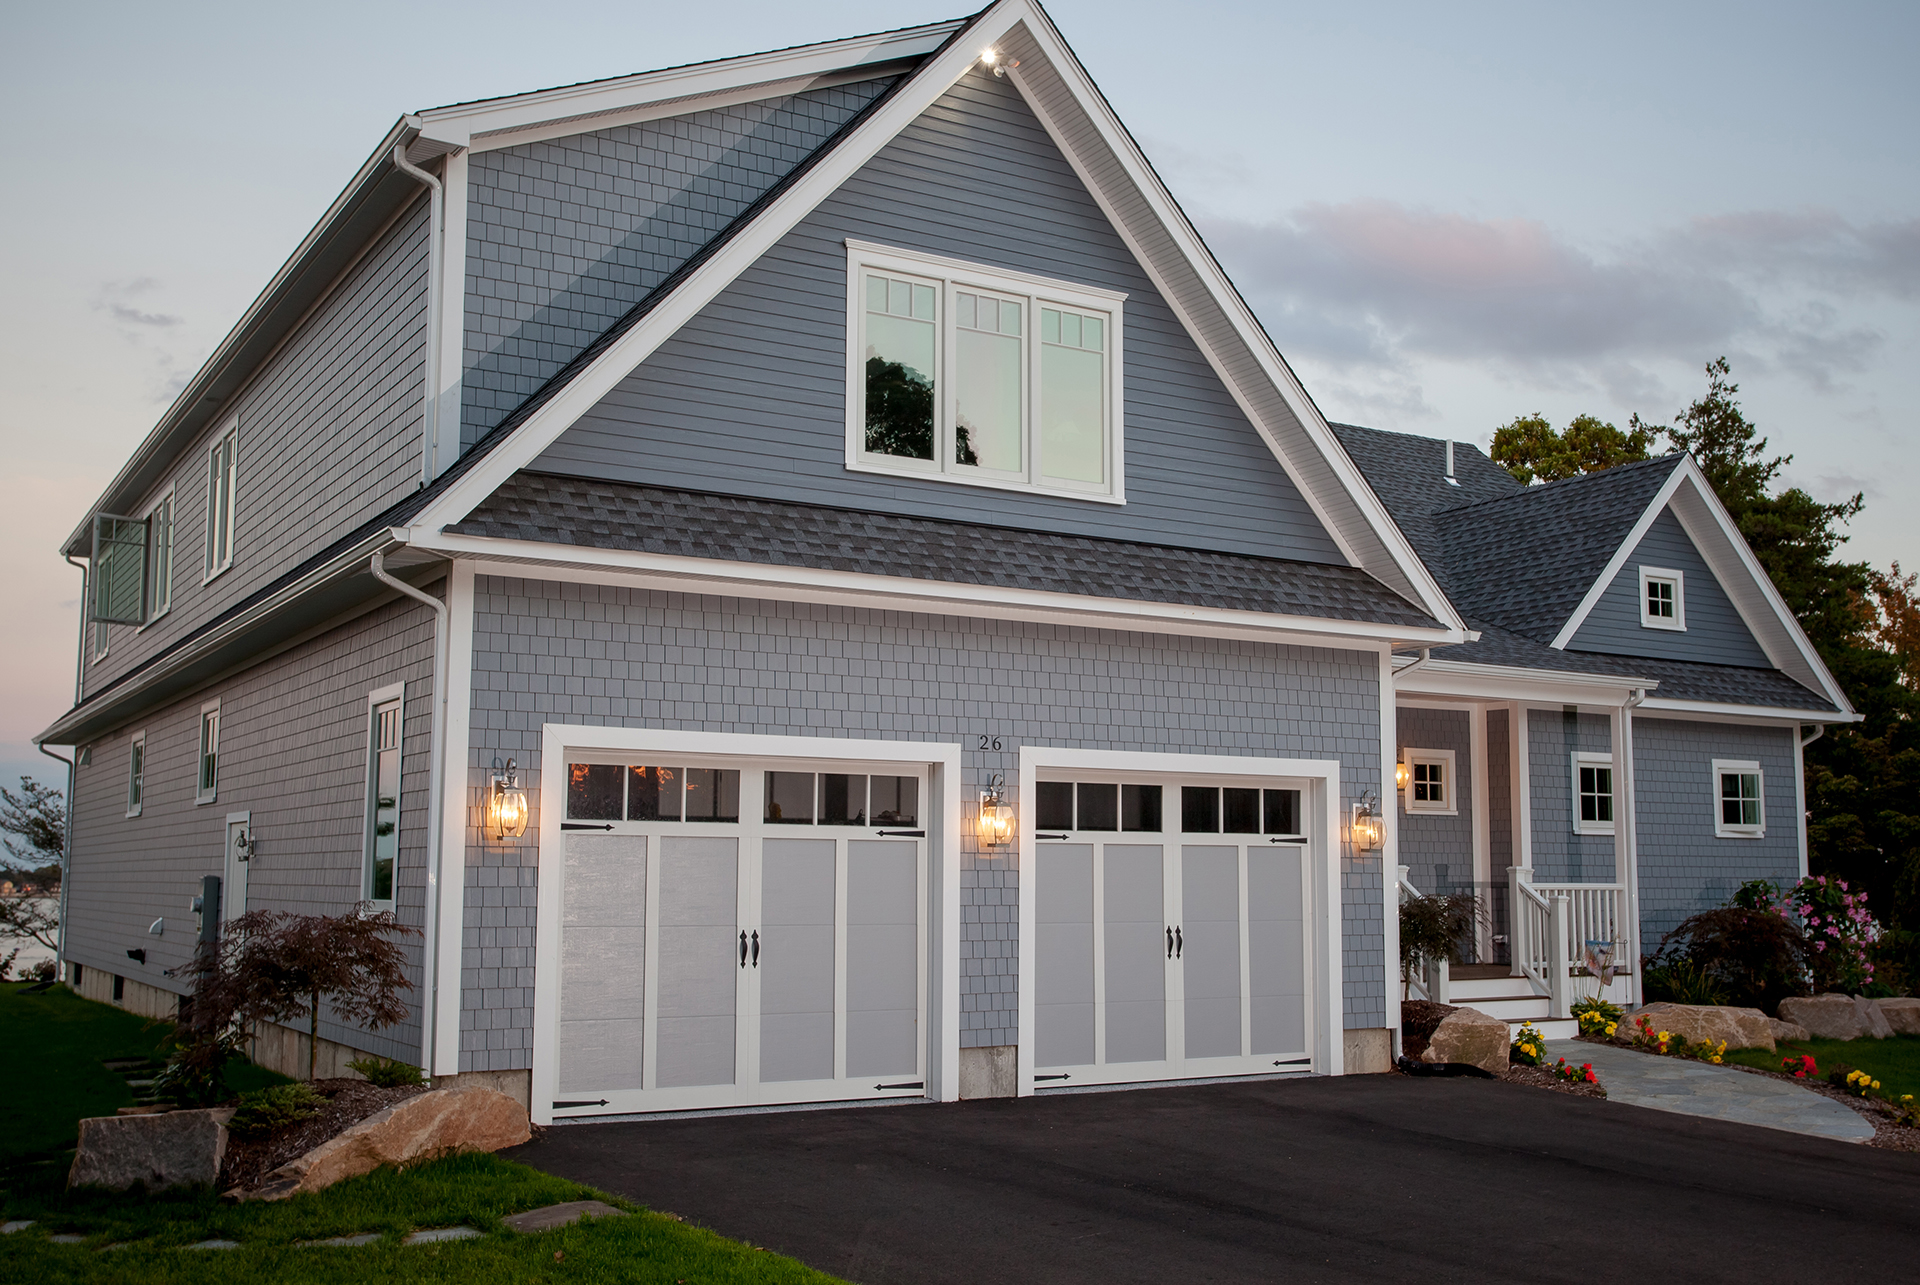 Traditional American Garage Doors in Newton, MA